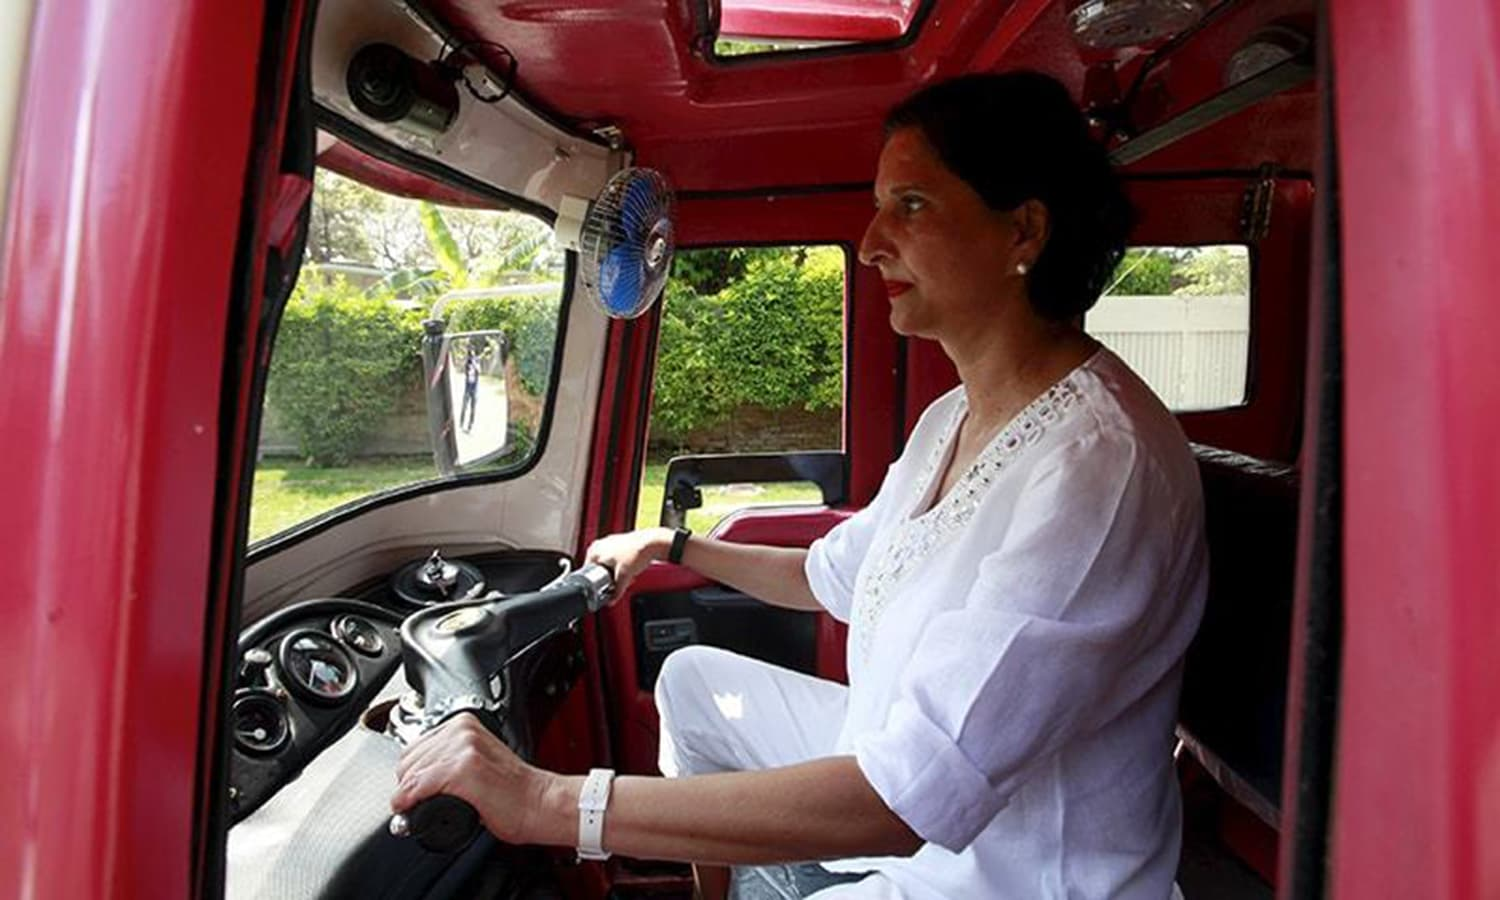 Hasan feels that women-only vehicles are not the solution. Photo: Reuters/File